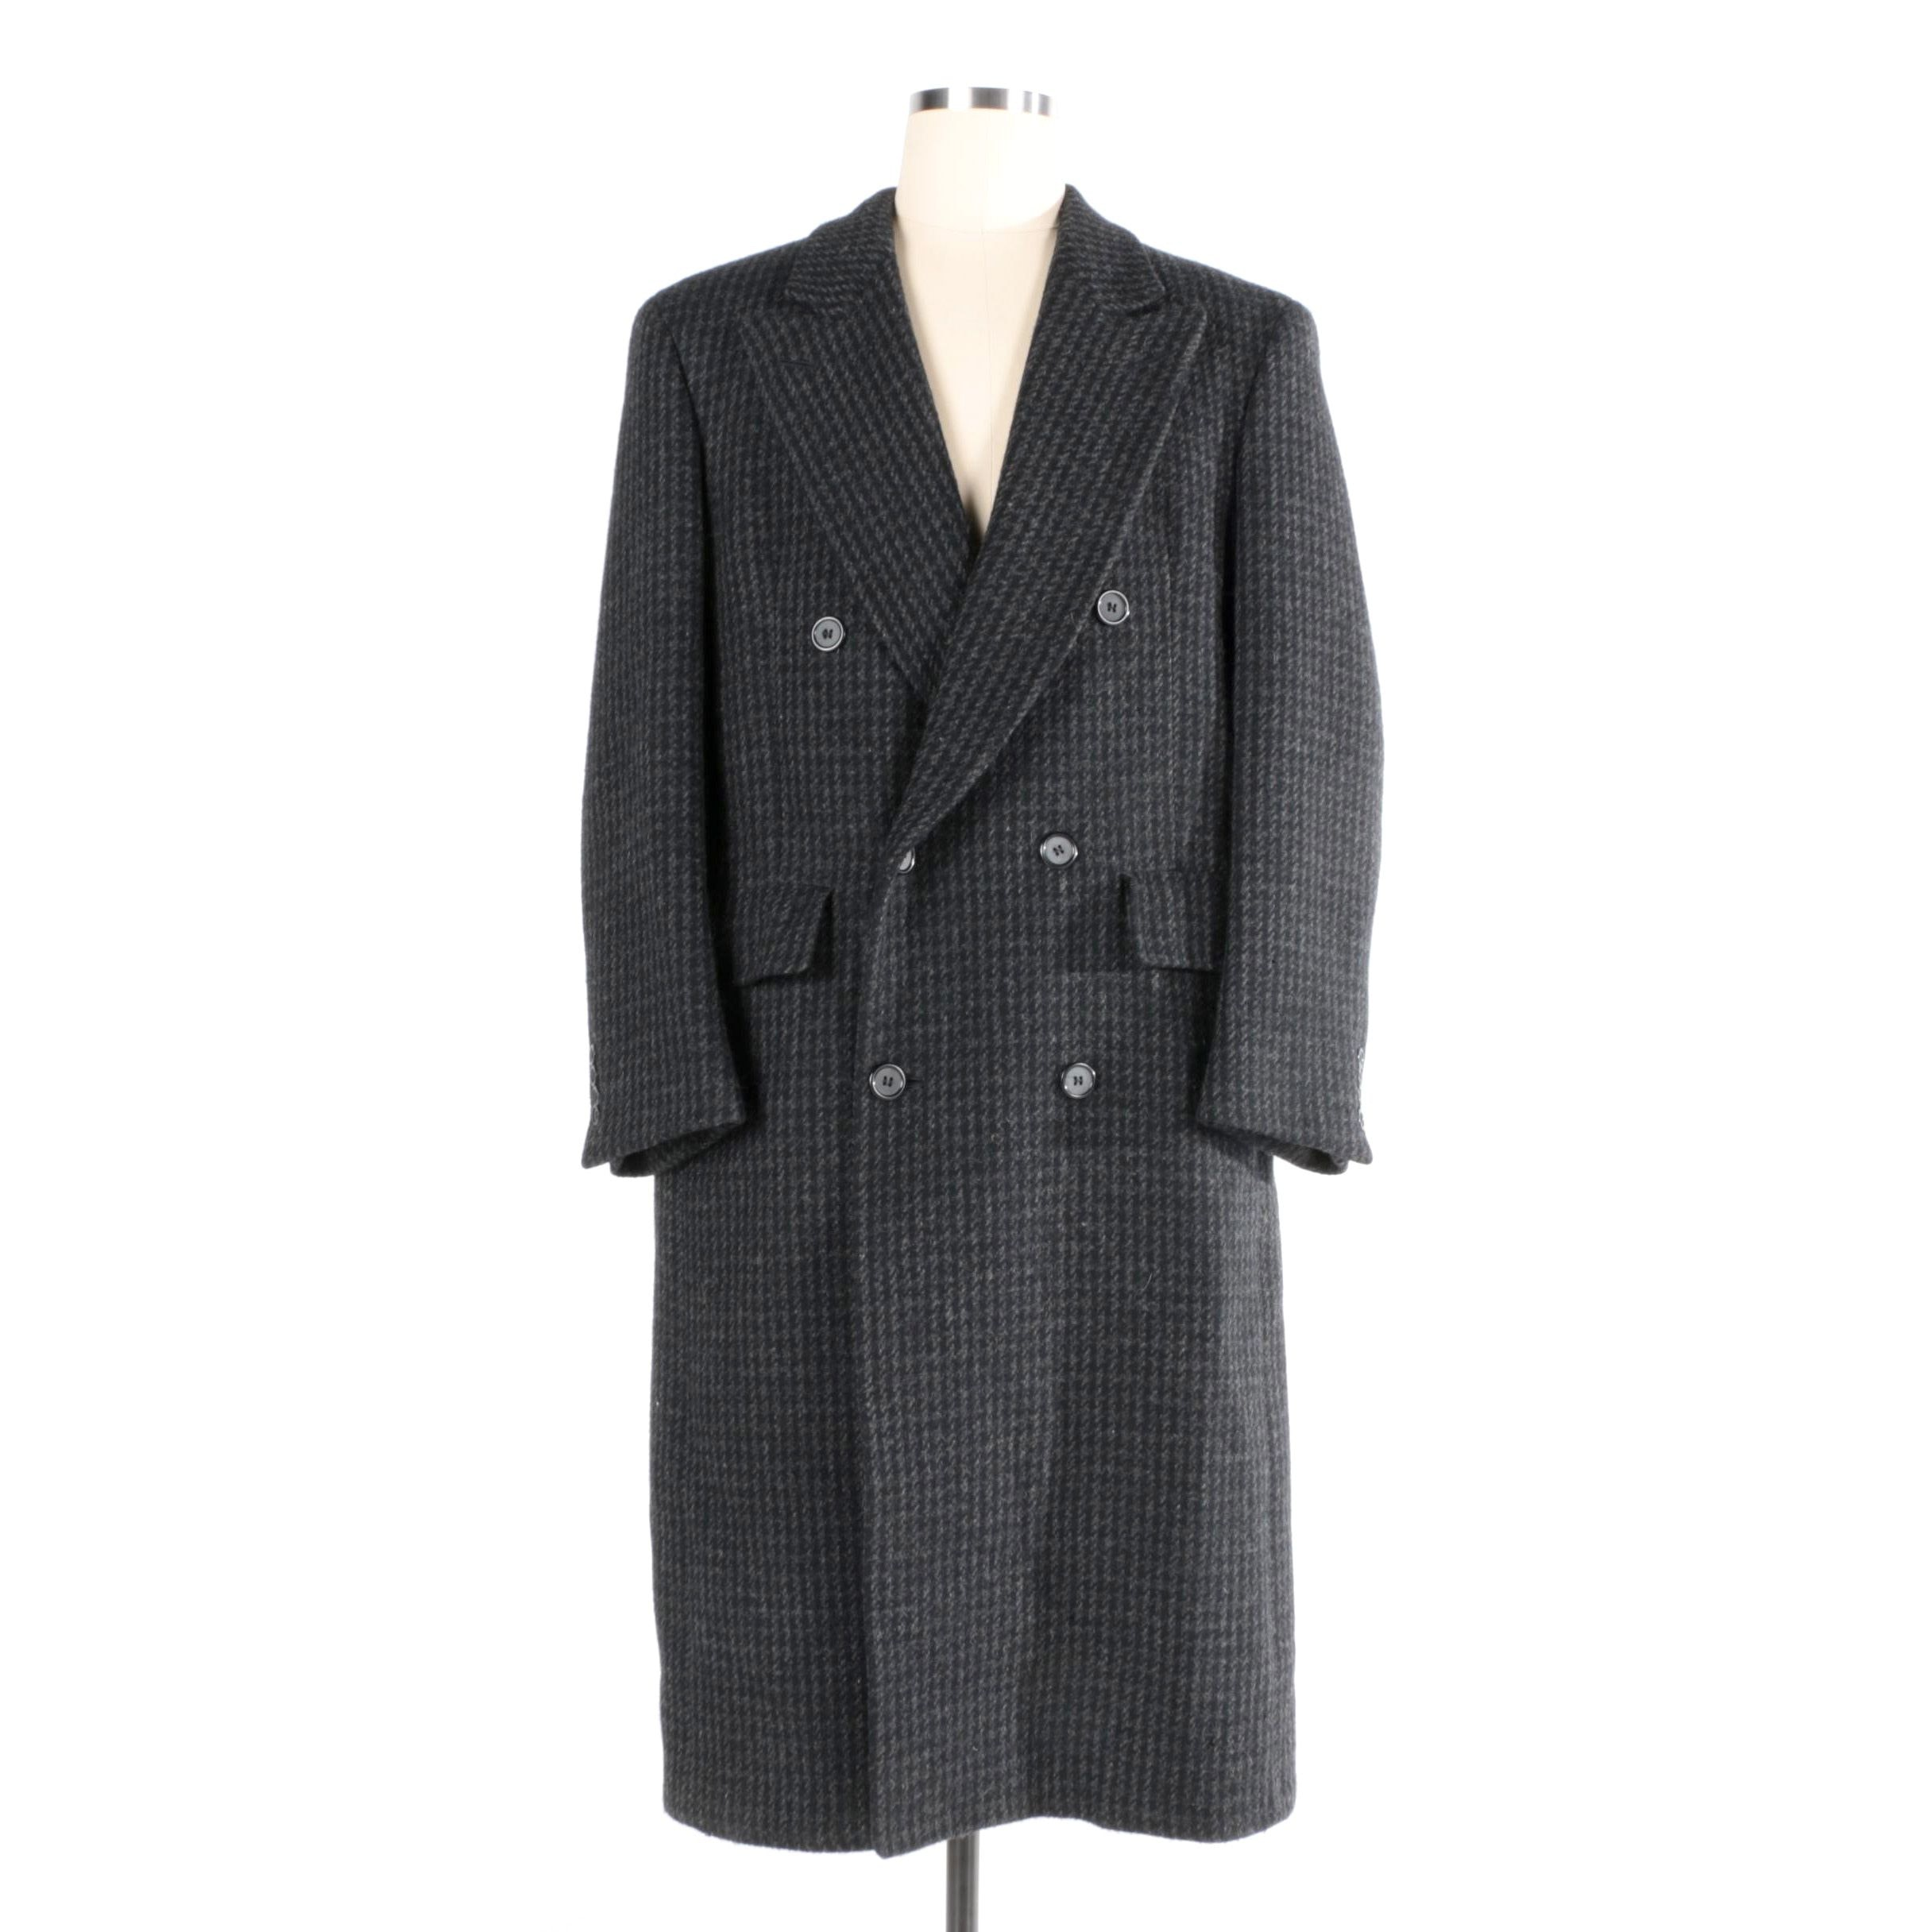 Men's Christian Dior Monsieur Sport Houndstooth Overcoat